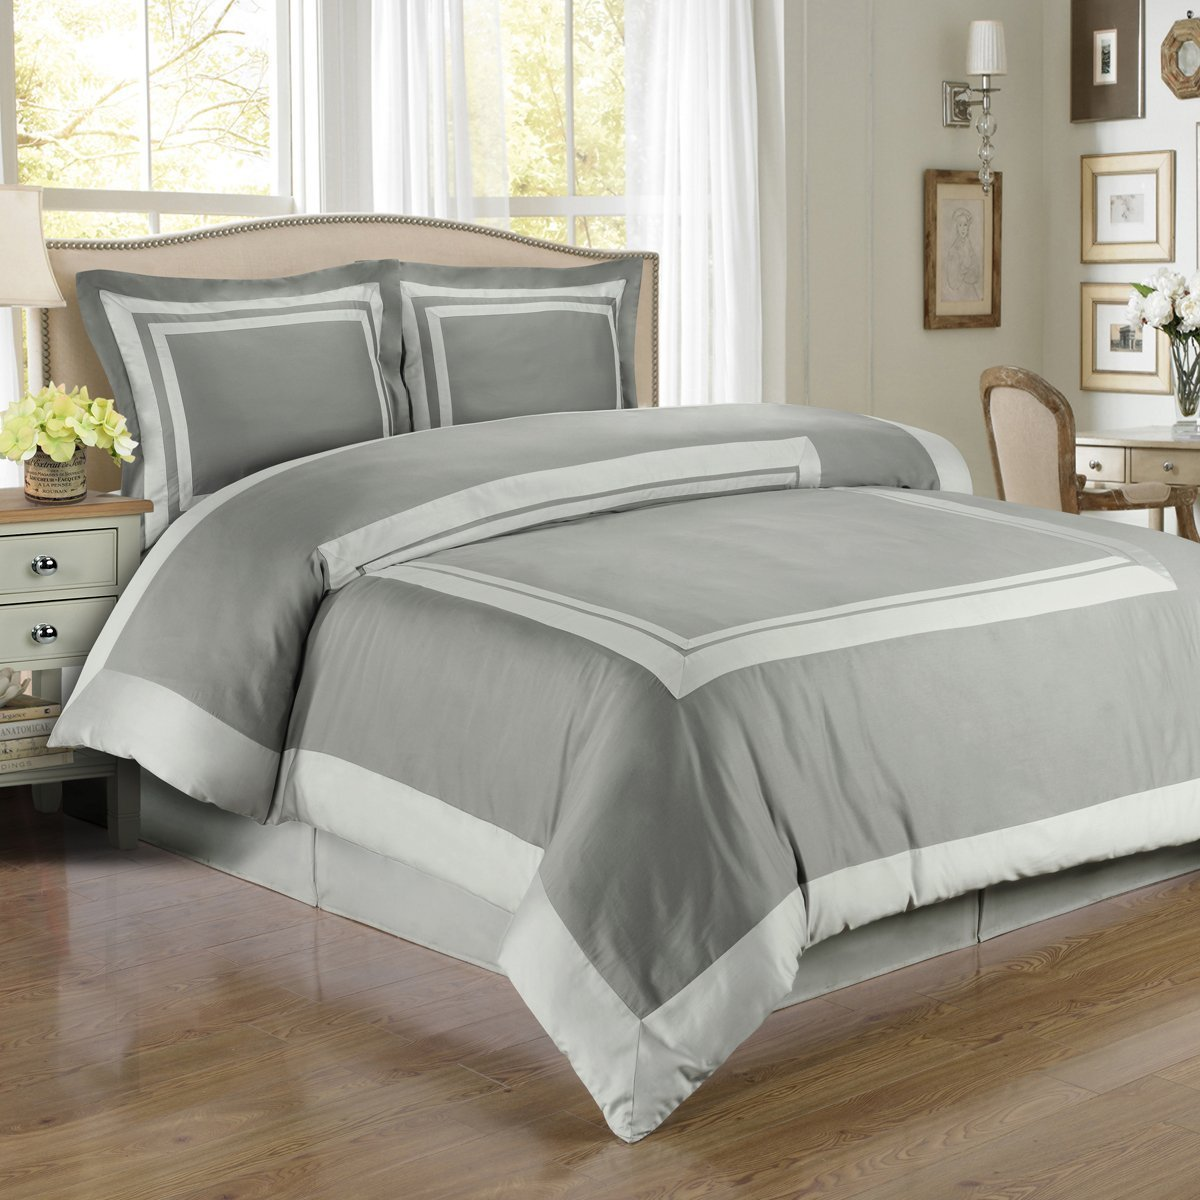 Amazon.com: Hotel Gray and Light Gray 3-Piece Full / Queen ...